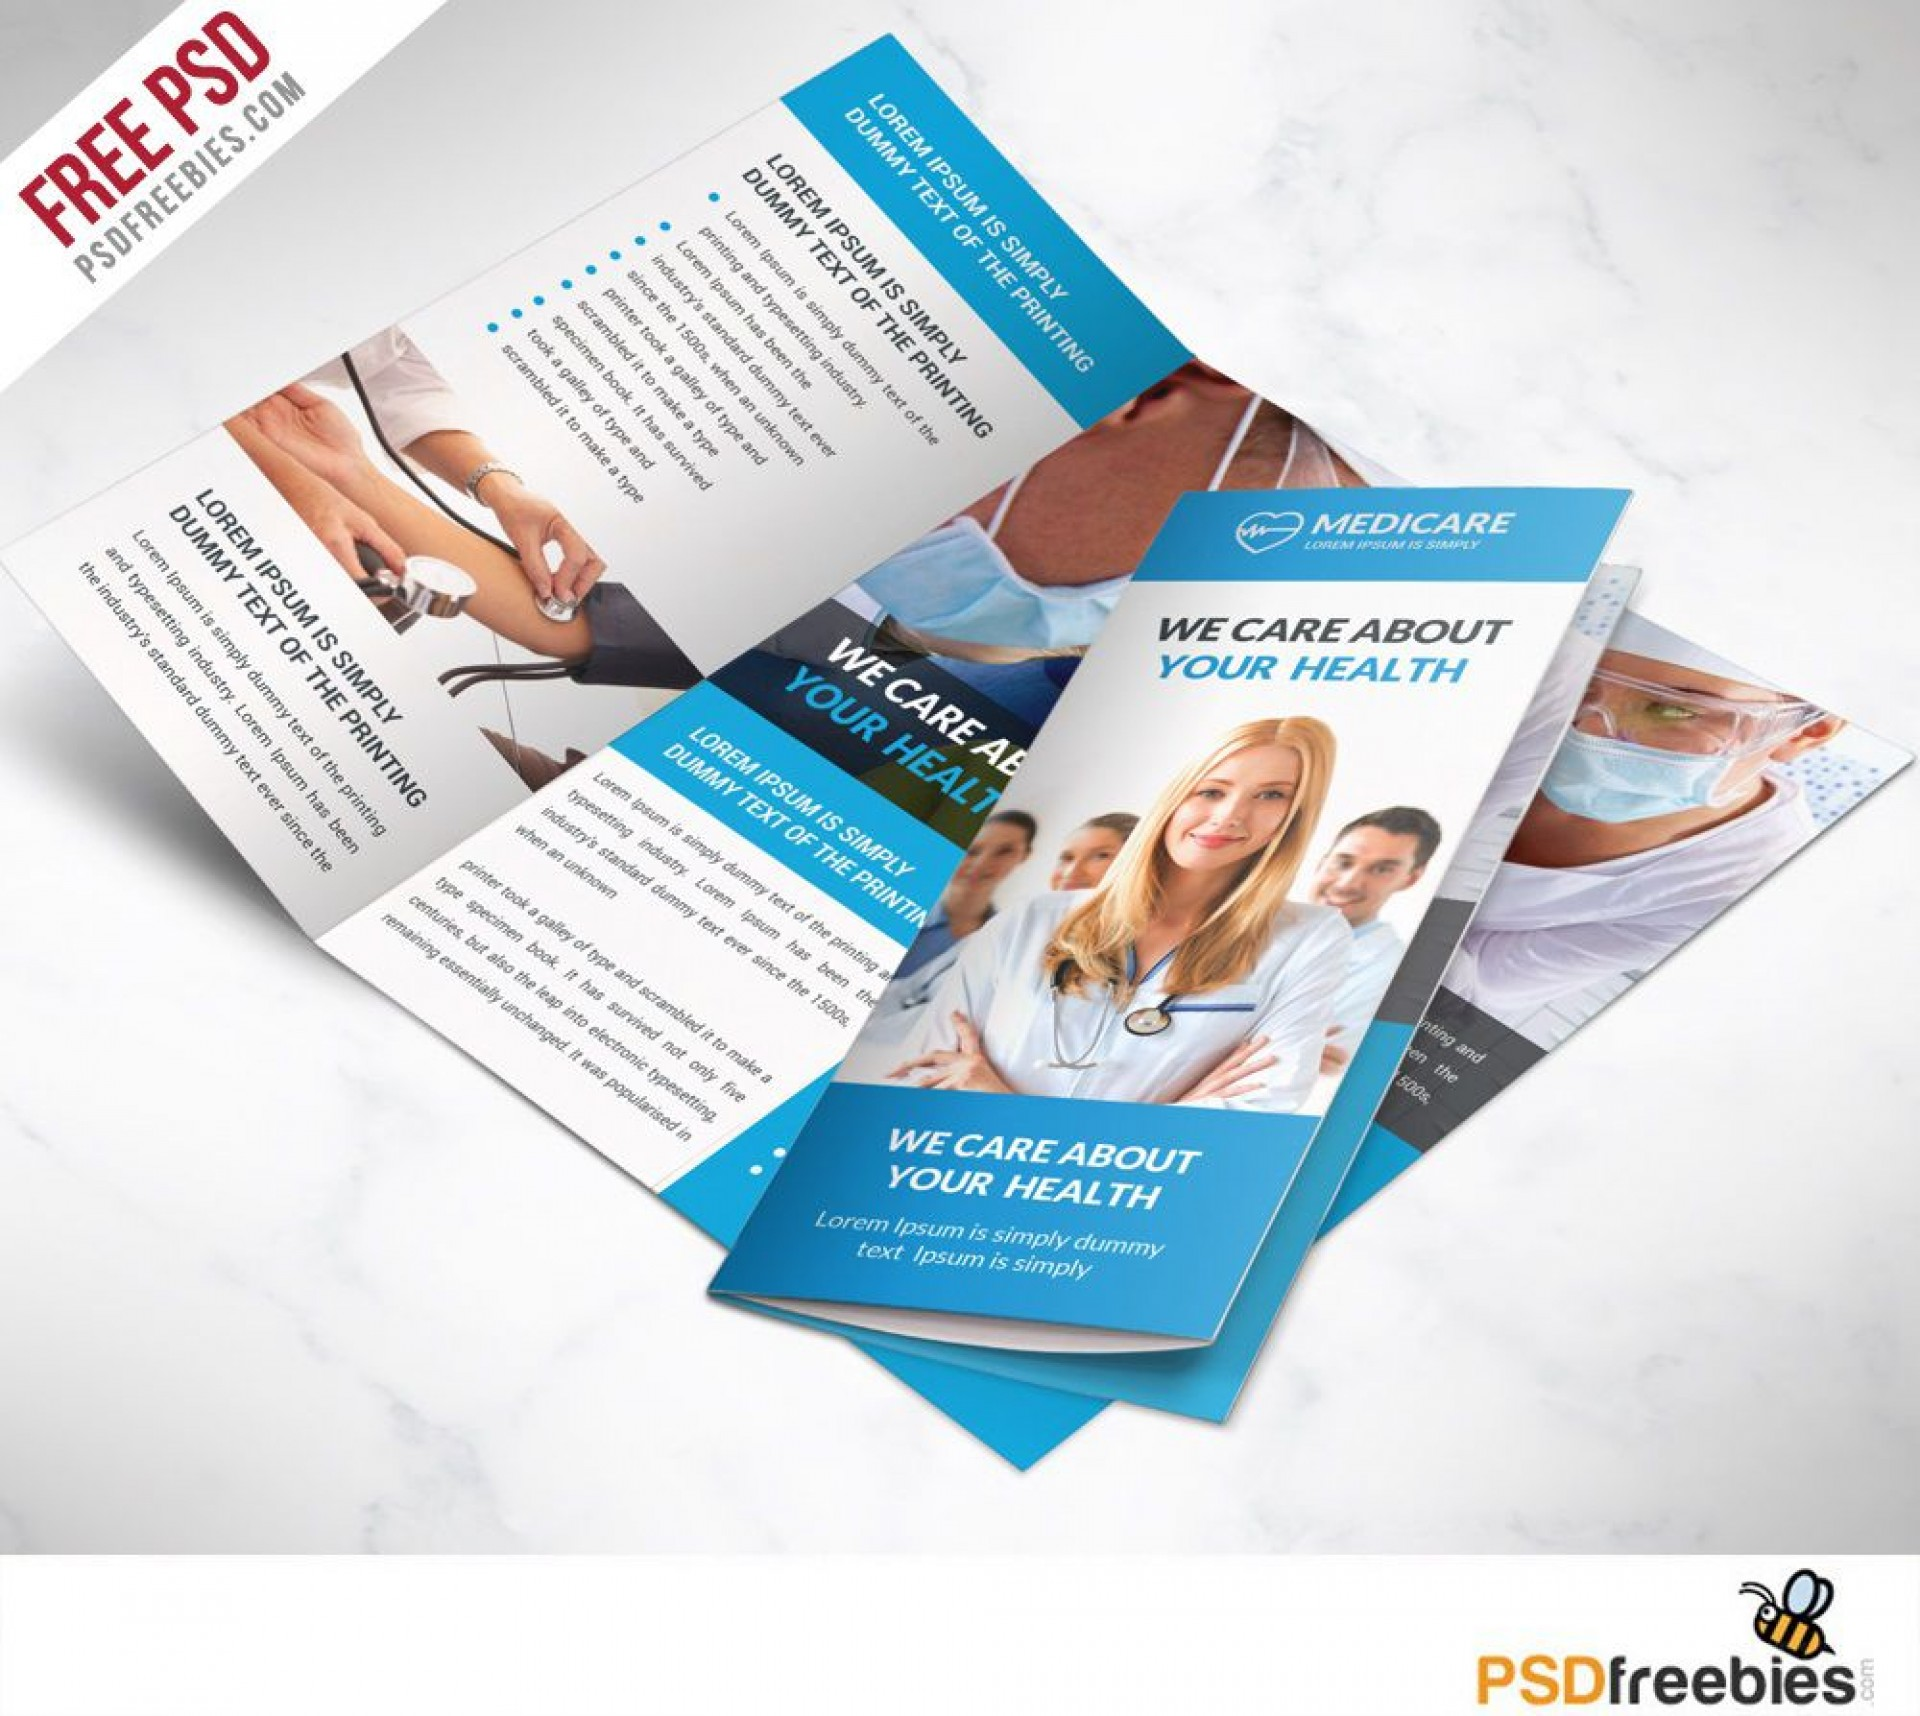 008 Surprising Brochure Design Template Free Download Psd Concept 1920